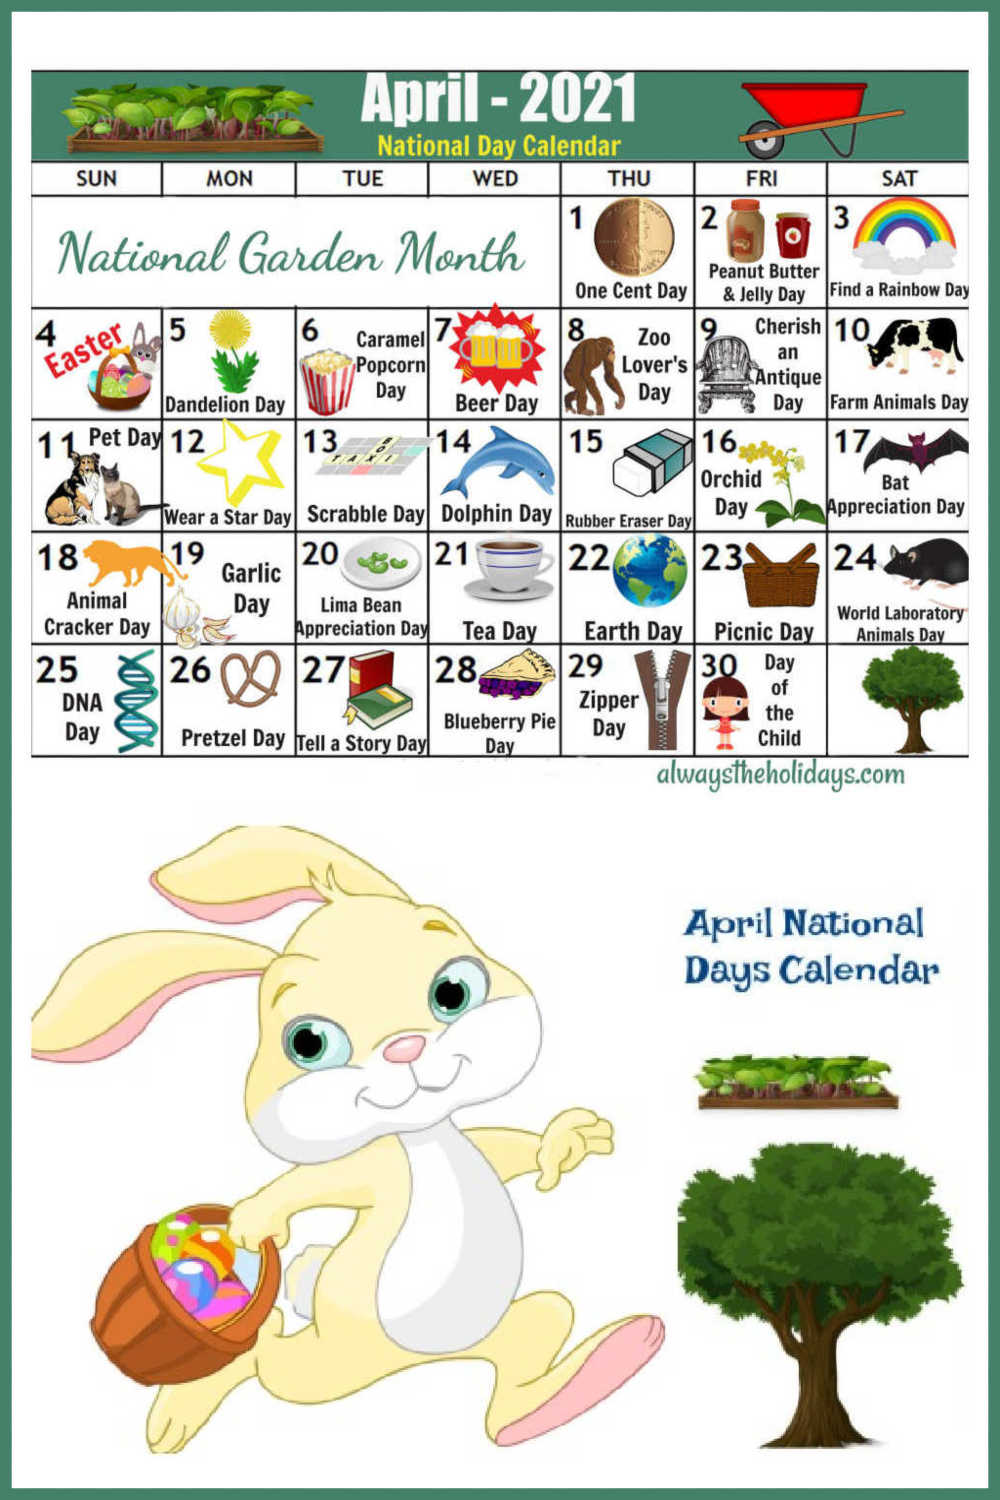 Easter Bunny, garden and tree with Calendar of National Days of April 2021